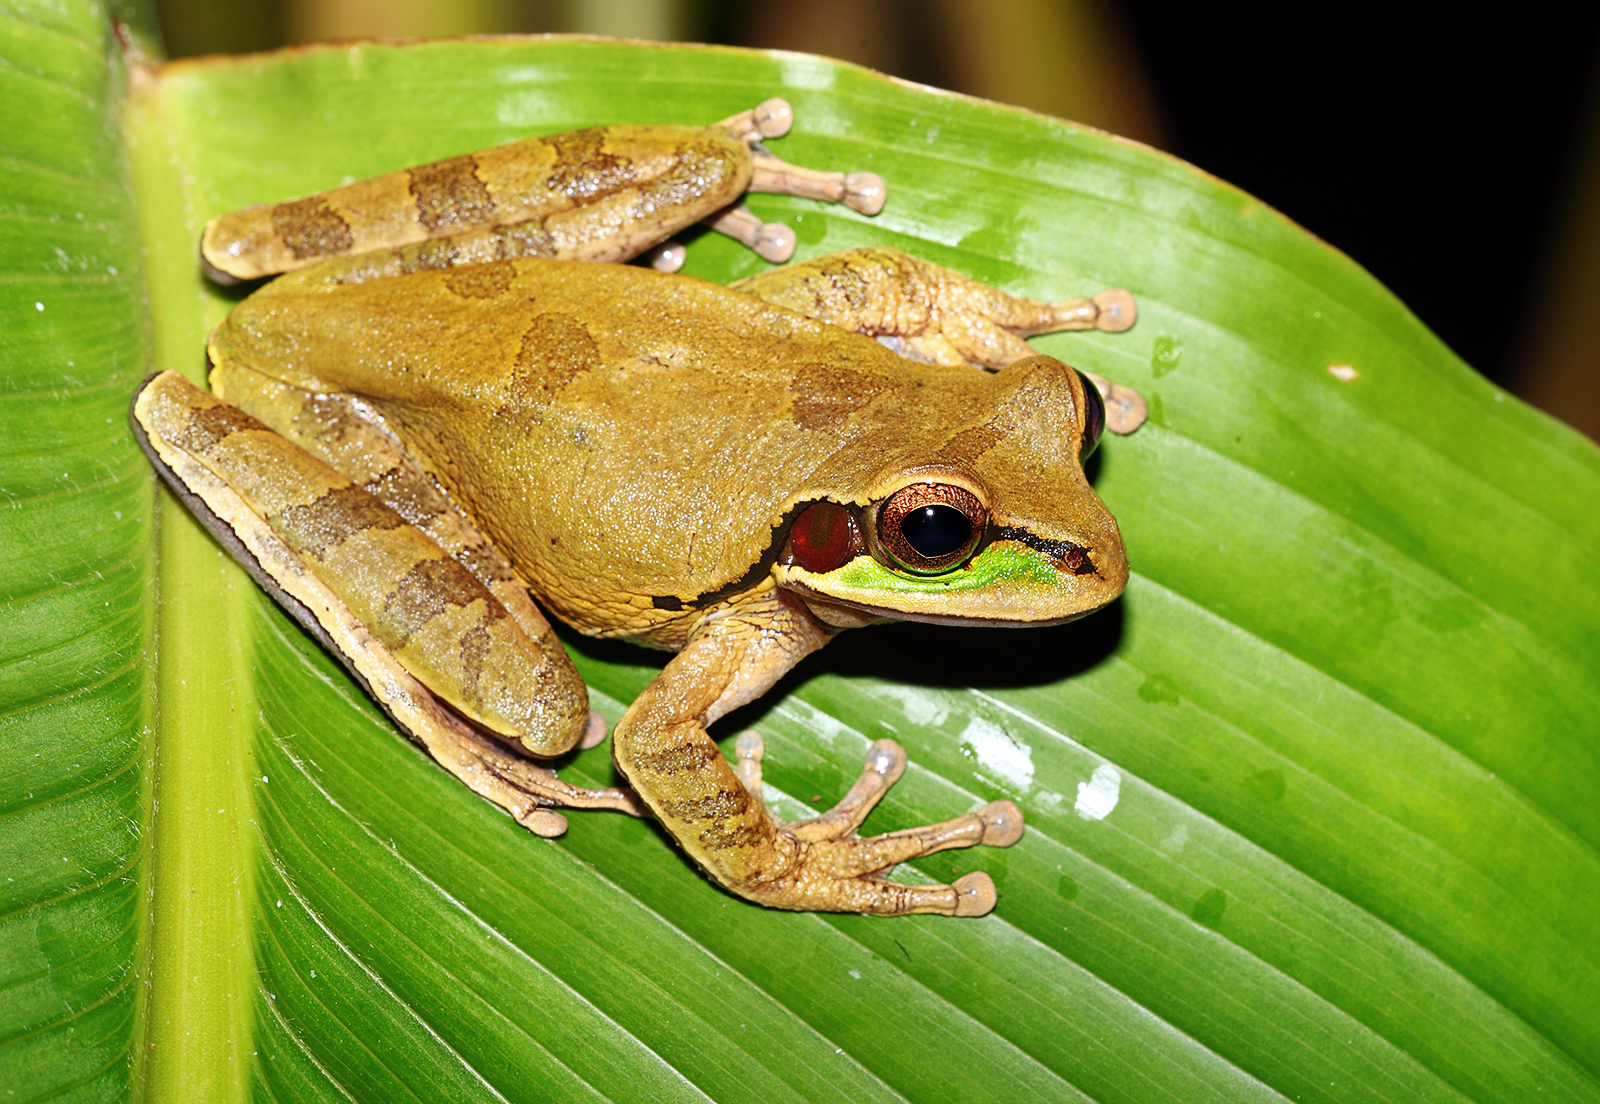 Mexican burrowing tree frog - Wikipedia